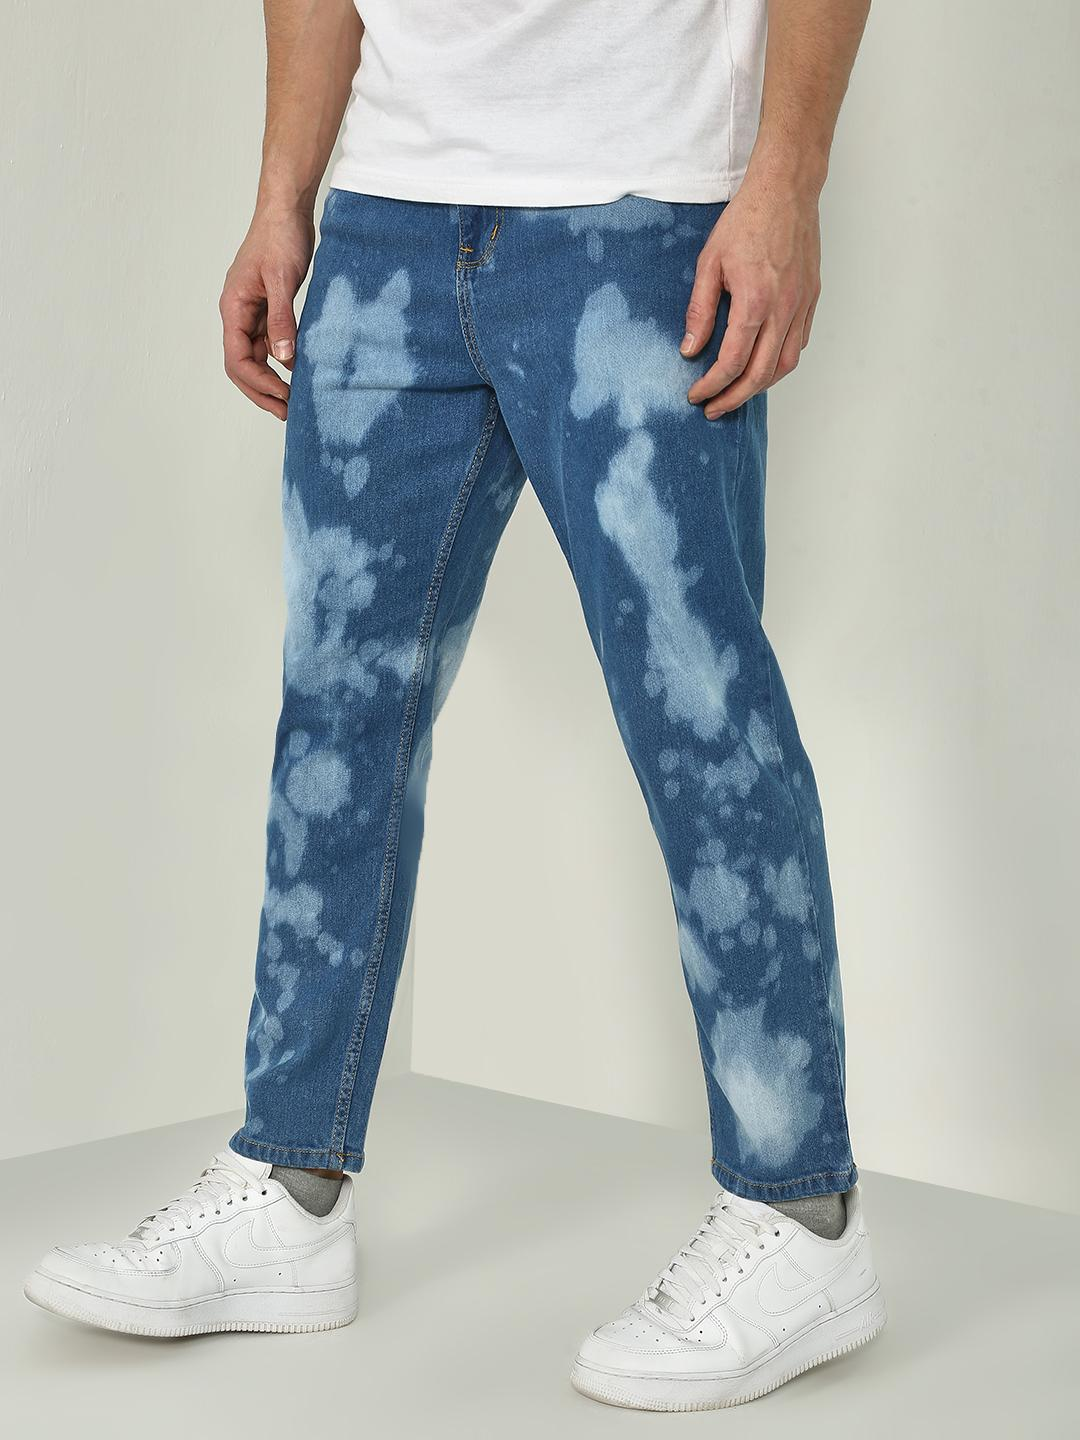 Blue Saint Blue Bleach Dye Regular Fit Jeans 1